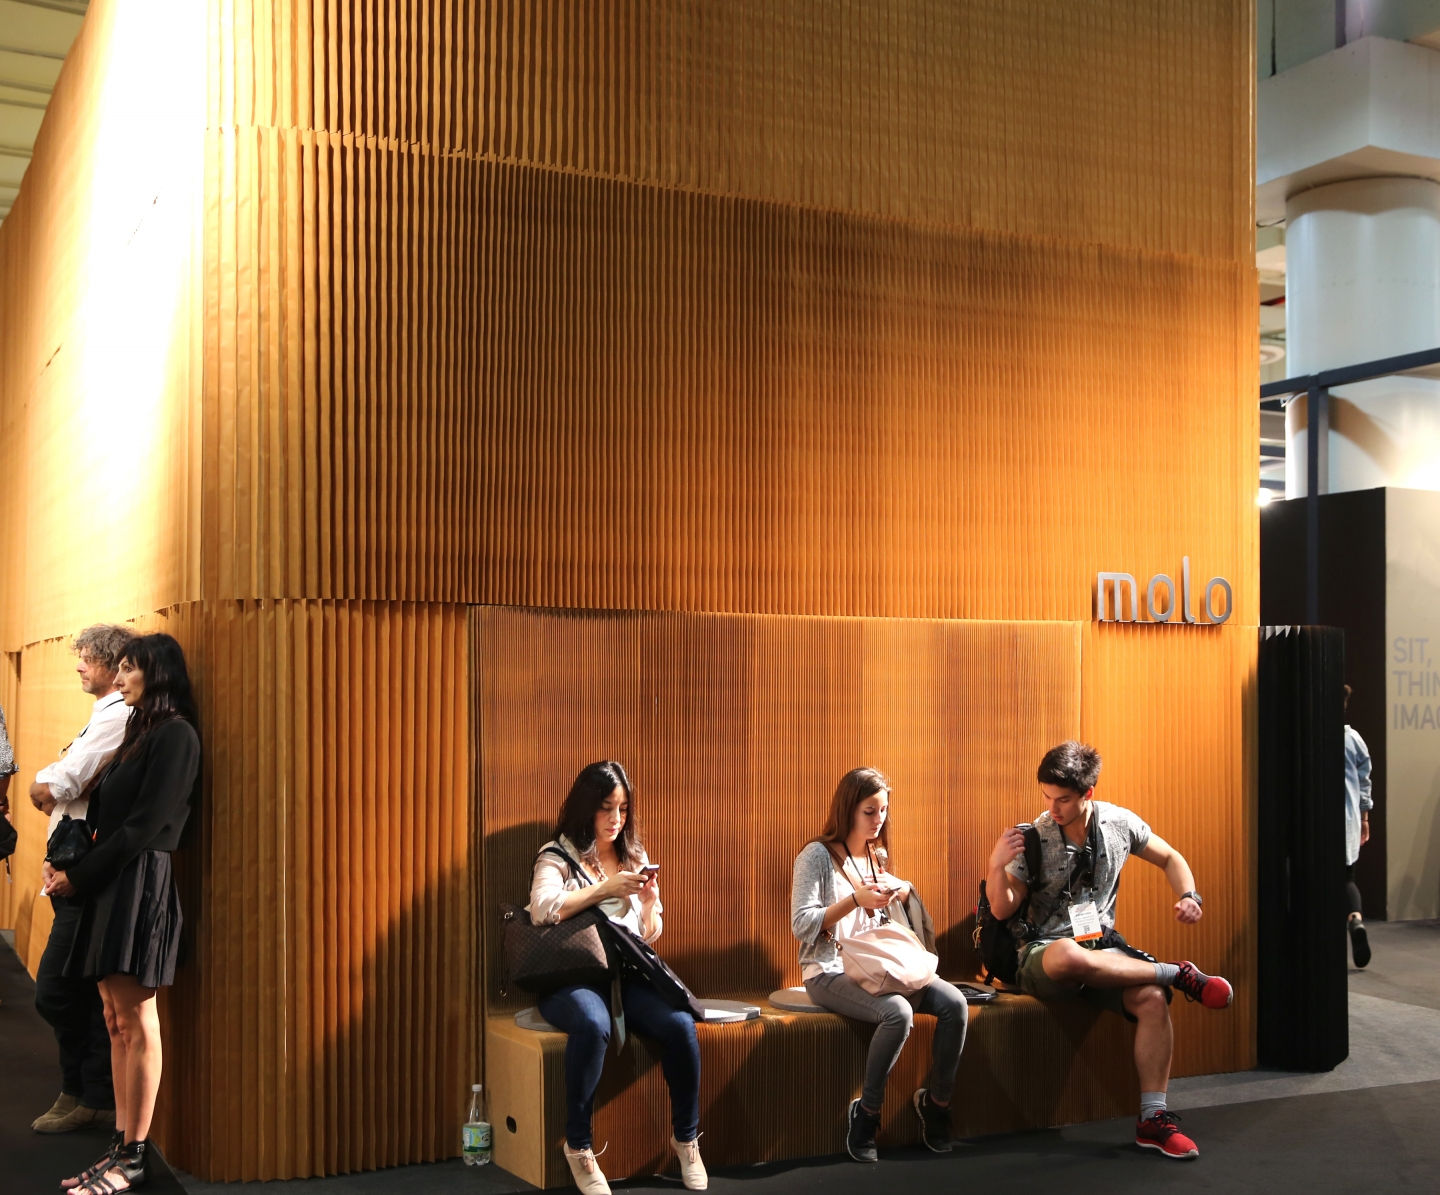 paper seating / accordion paper furniture by molo - guests take a rest on benchwall at molo's installation at ICFF 2016